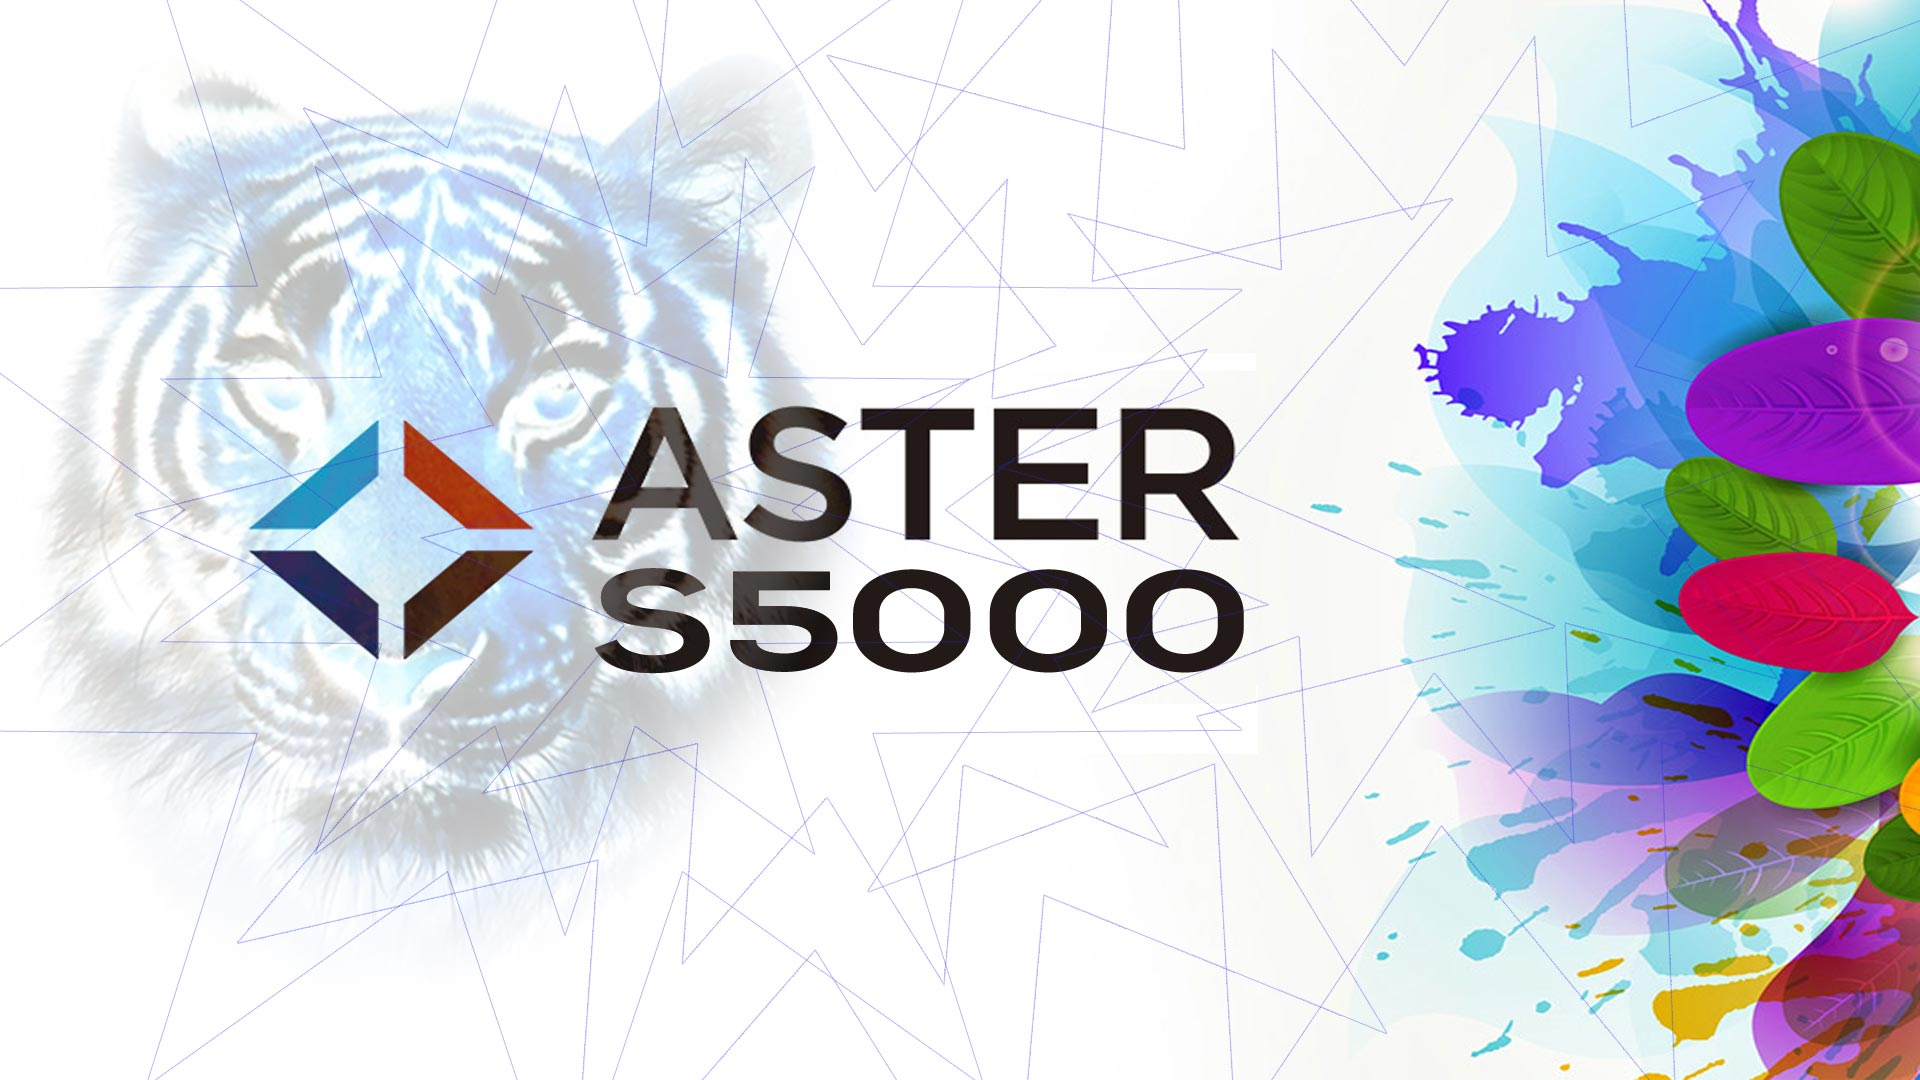 Download Software Aster S5000 Tiger Star Update Firmware Receiver